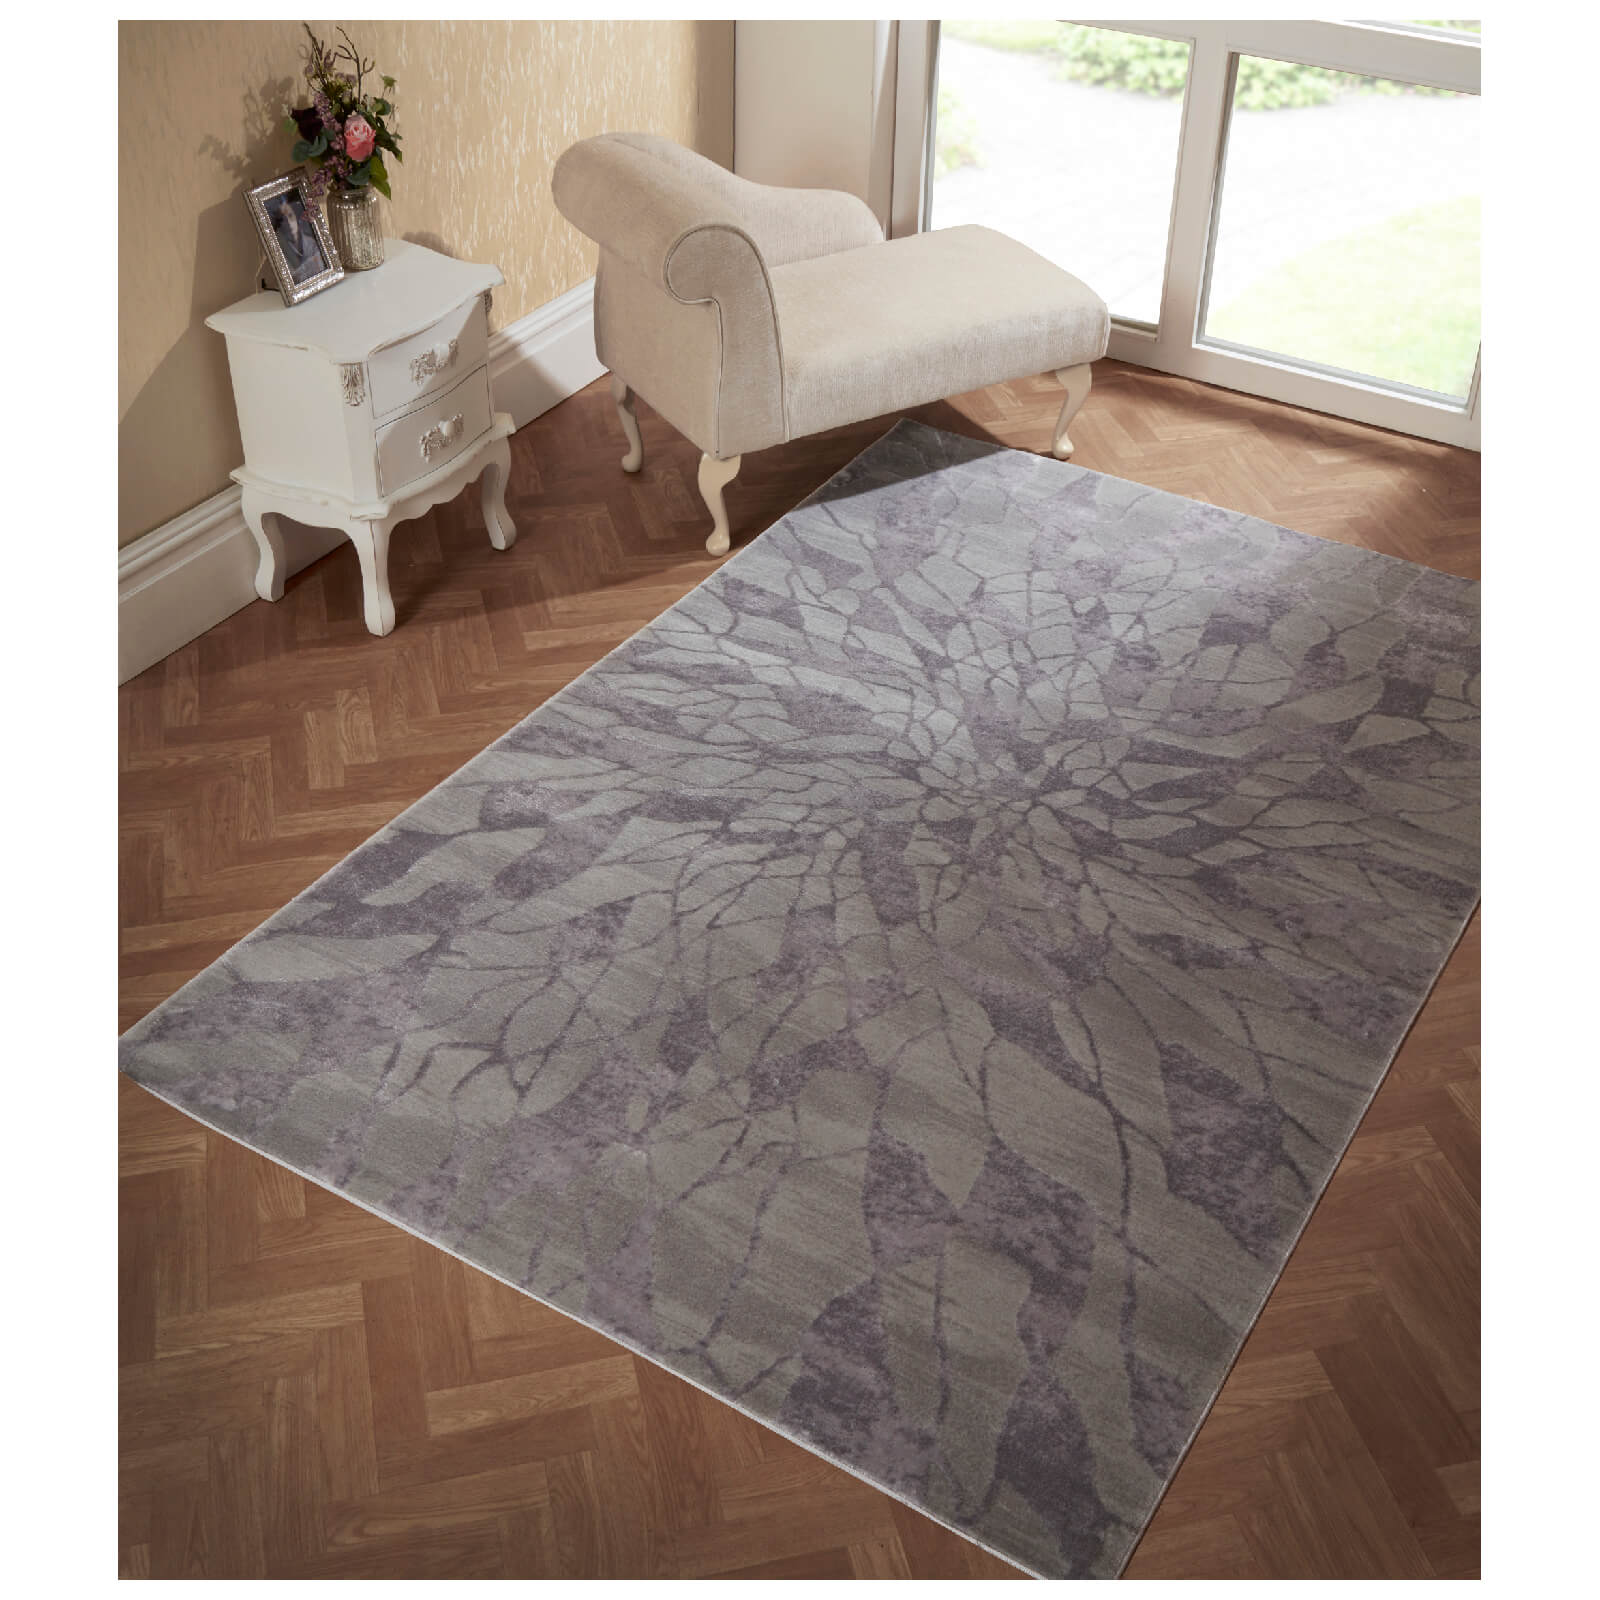 Flair Alpaca Suri Rug - Grey